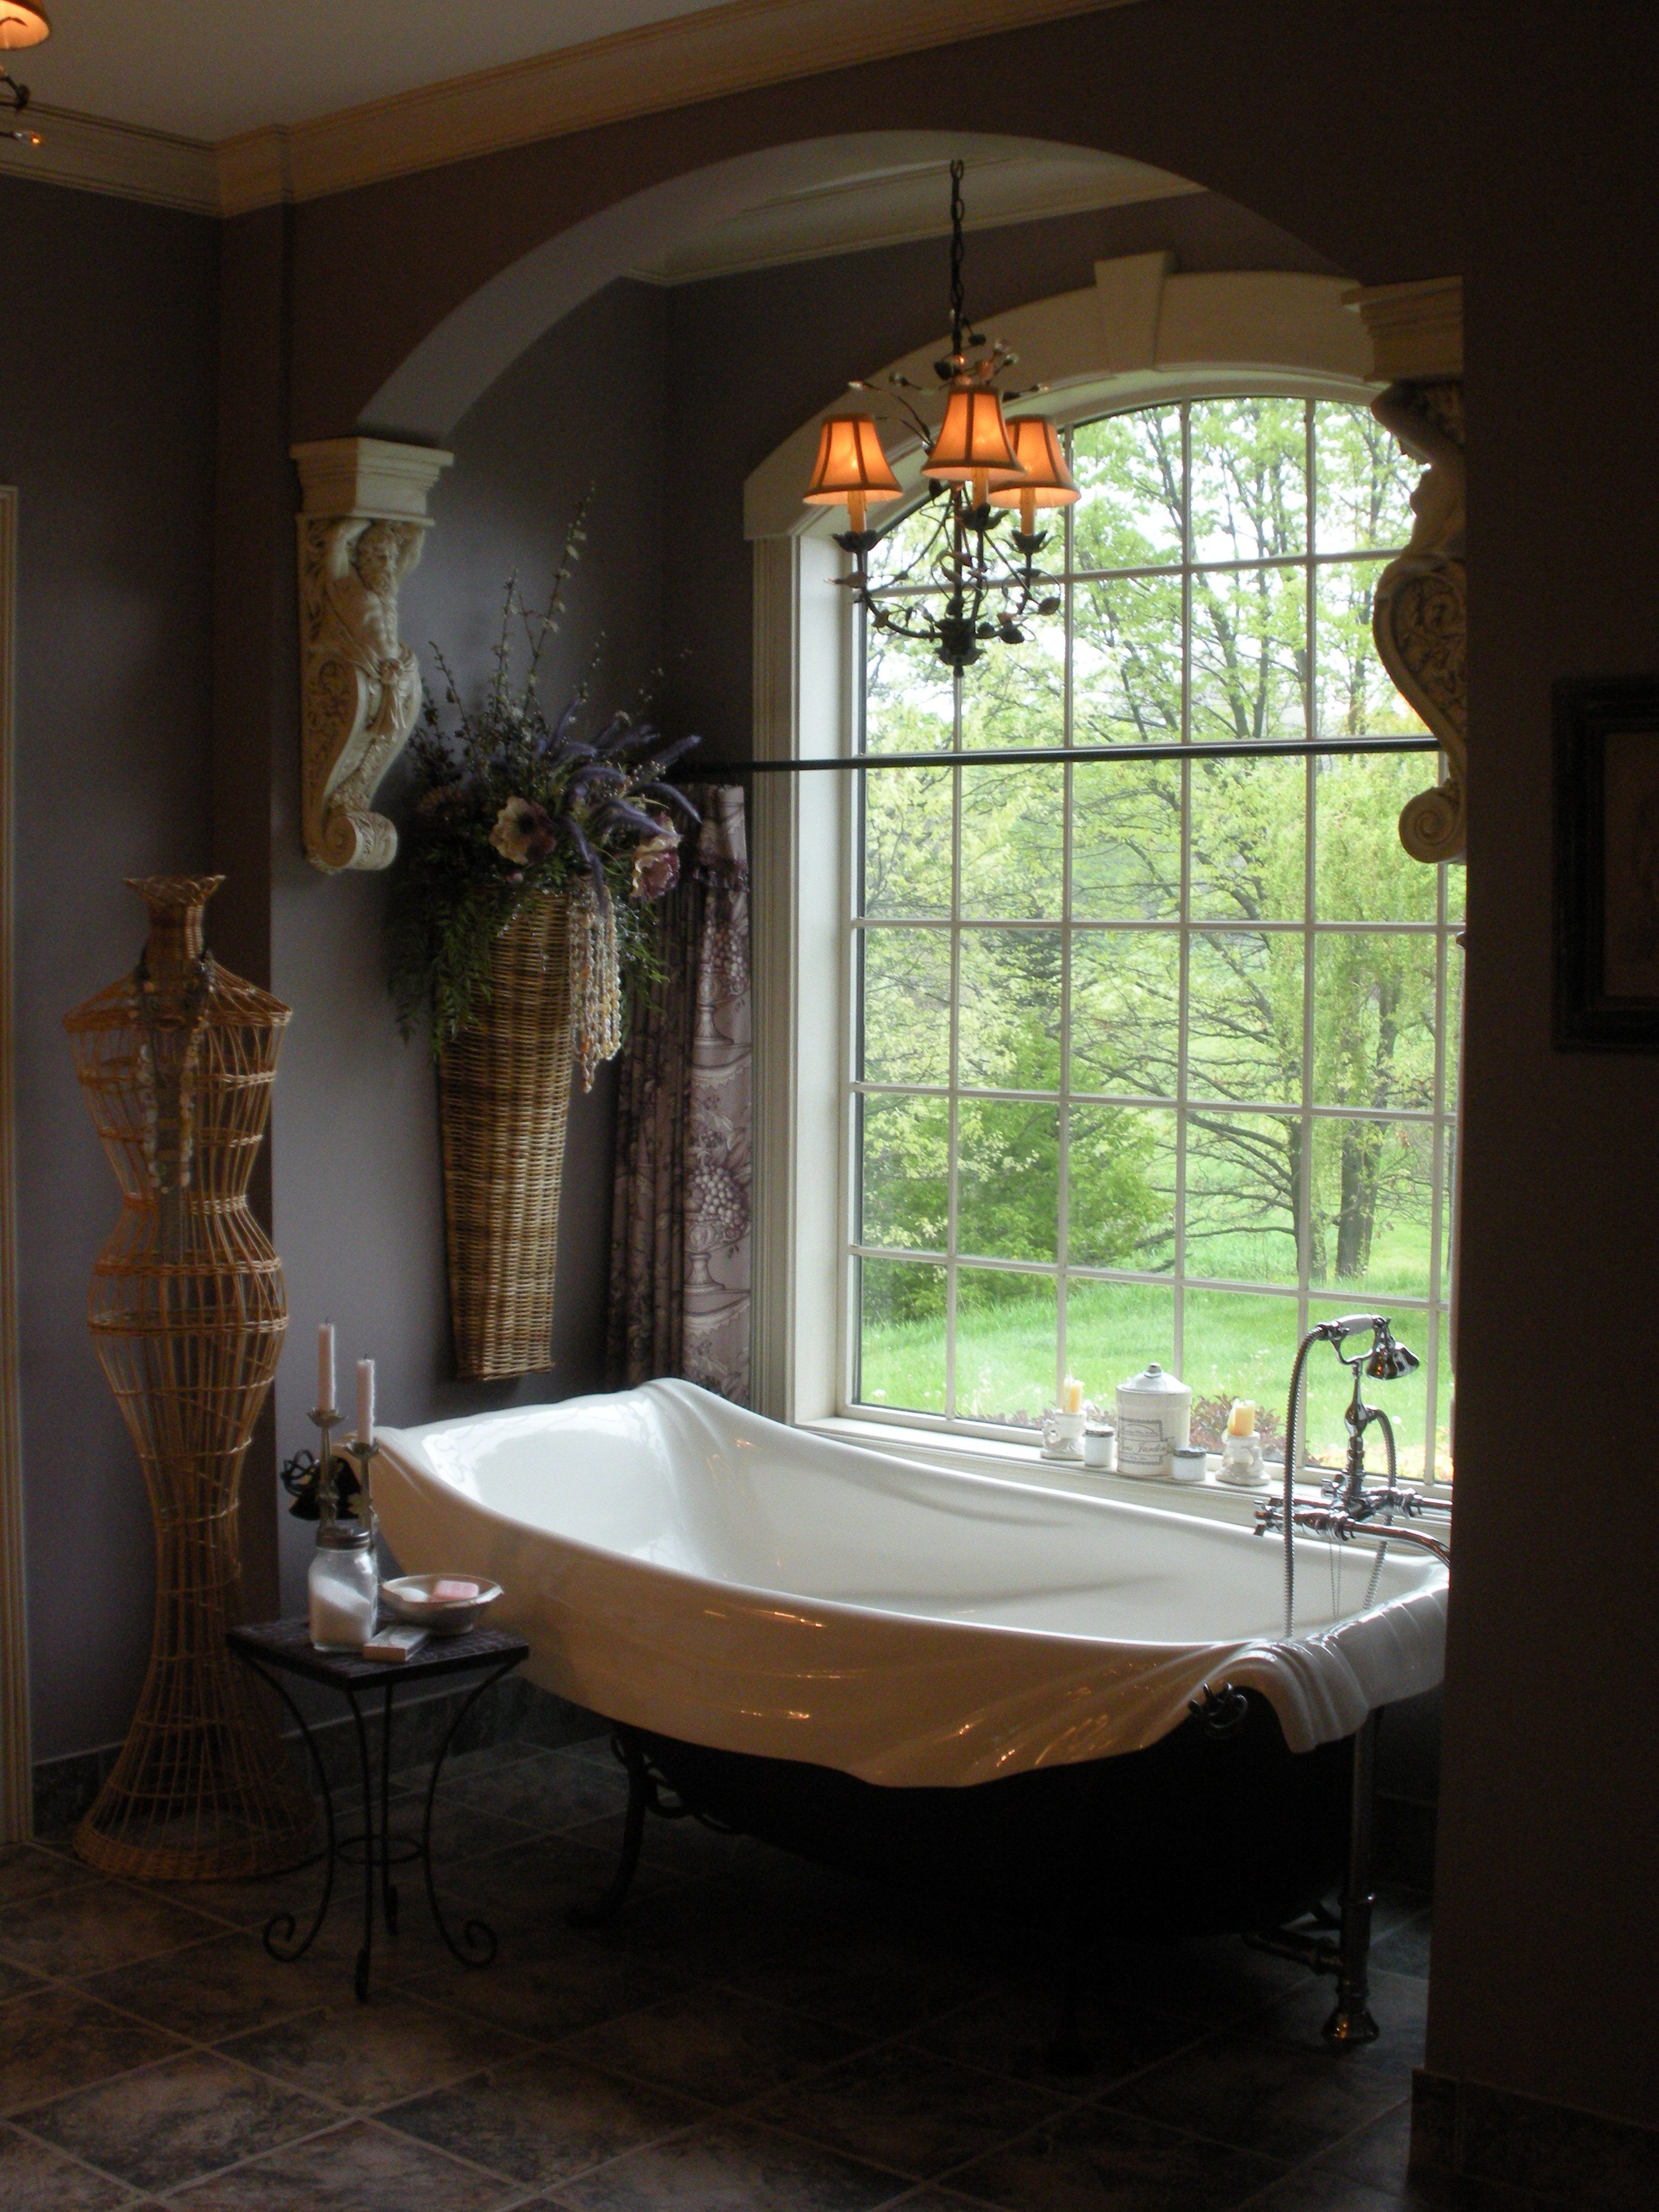 marat like bath with white swags of porcelain and a view on home inspirations this year the perfect dream bathrooms diy bathroom ideas id=86608